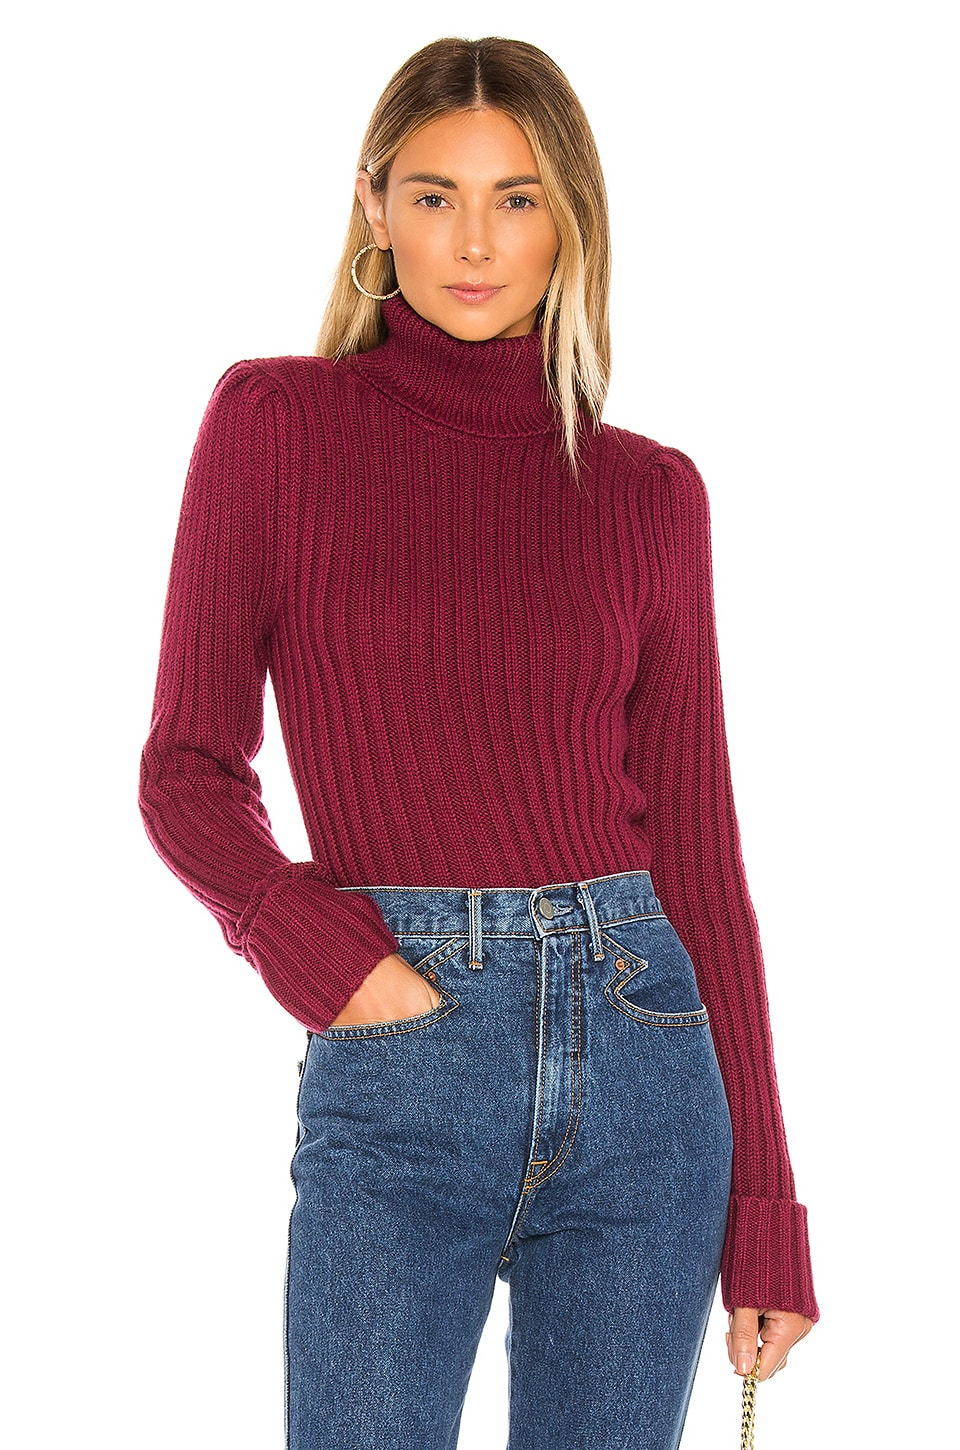 MAJORELLE Francis Turtleneck in Plum